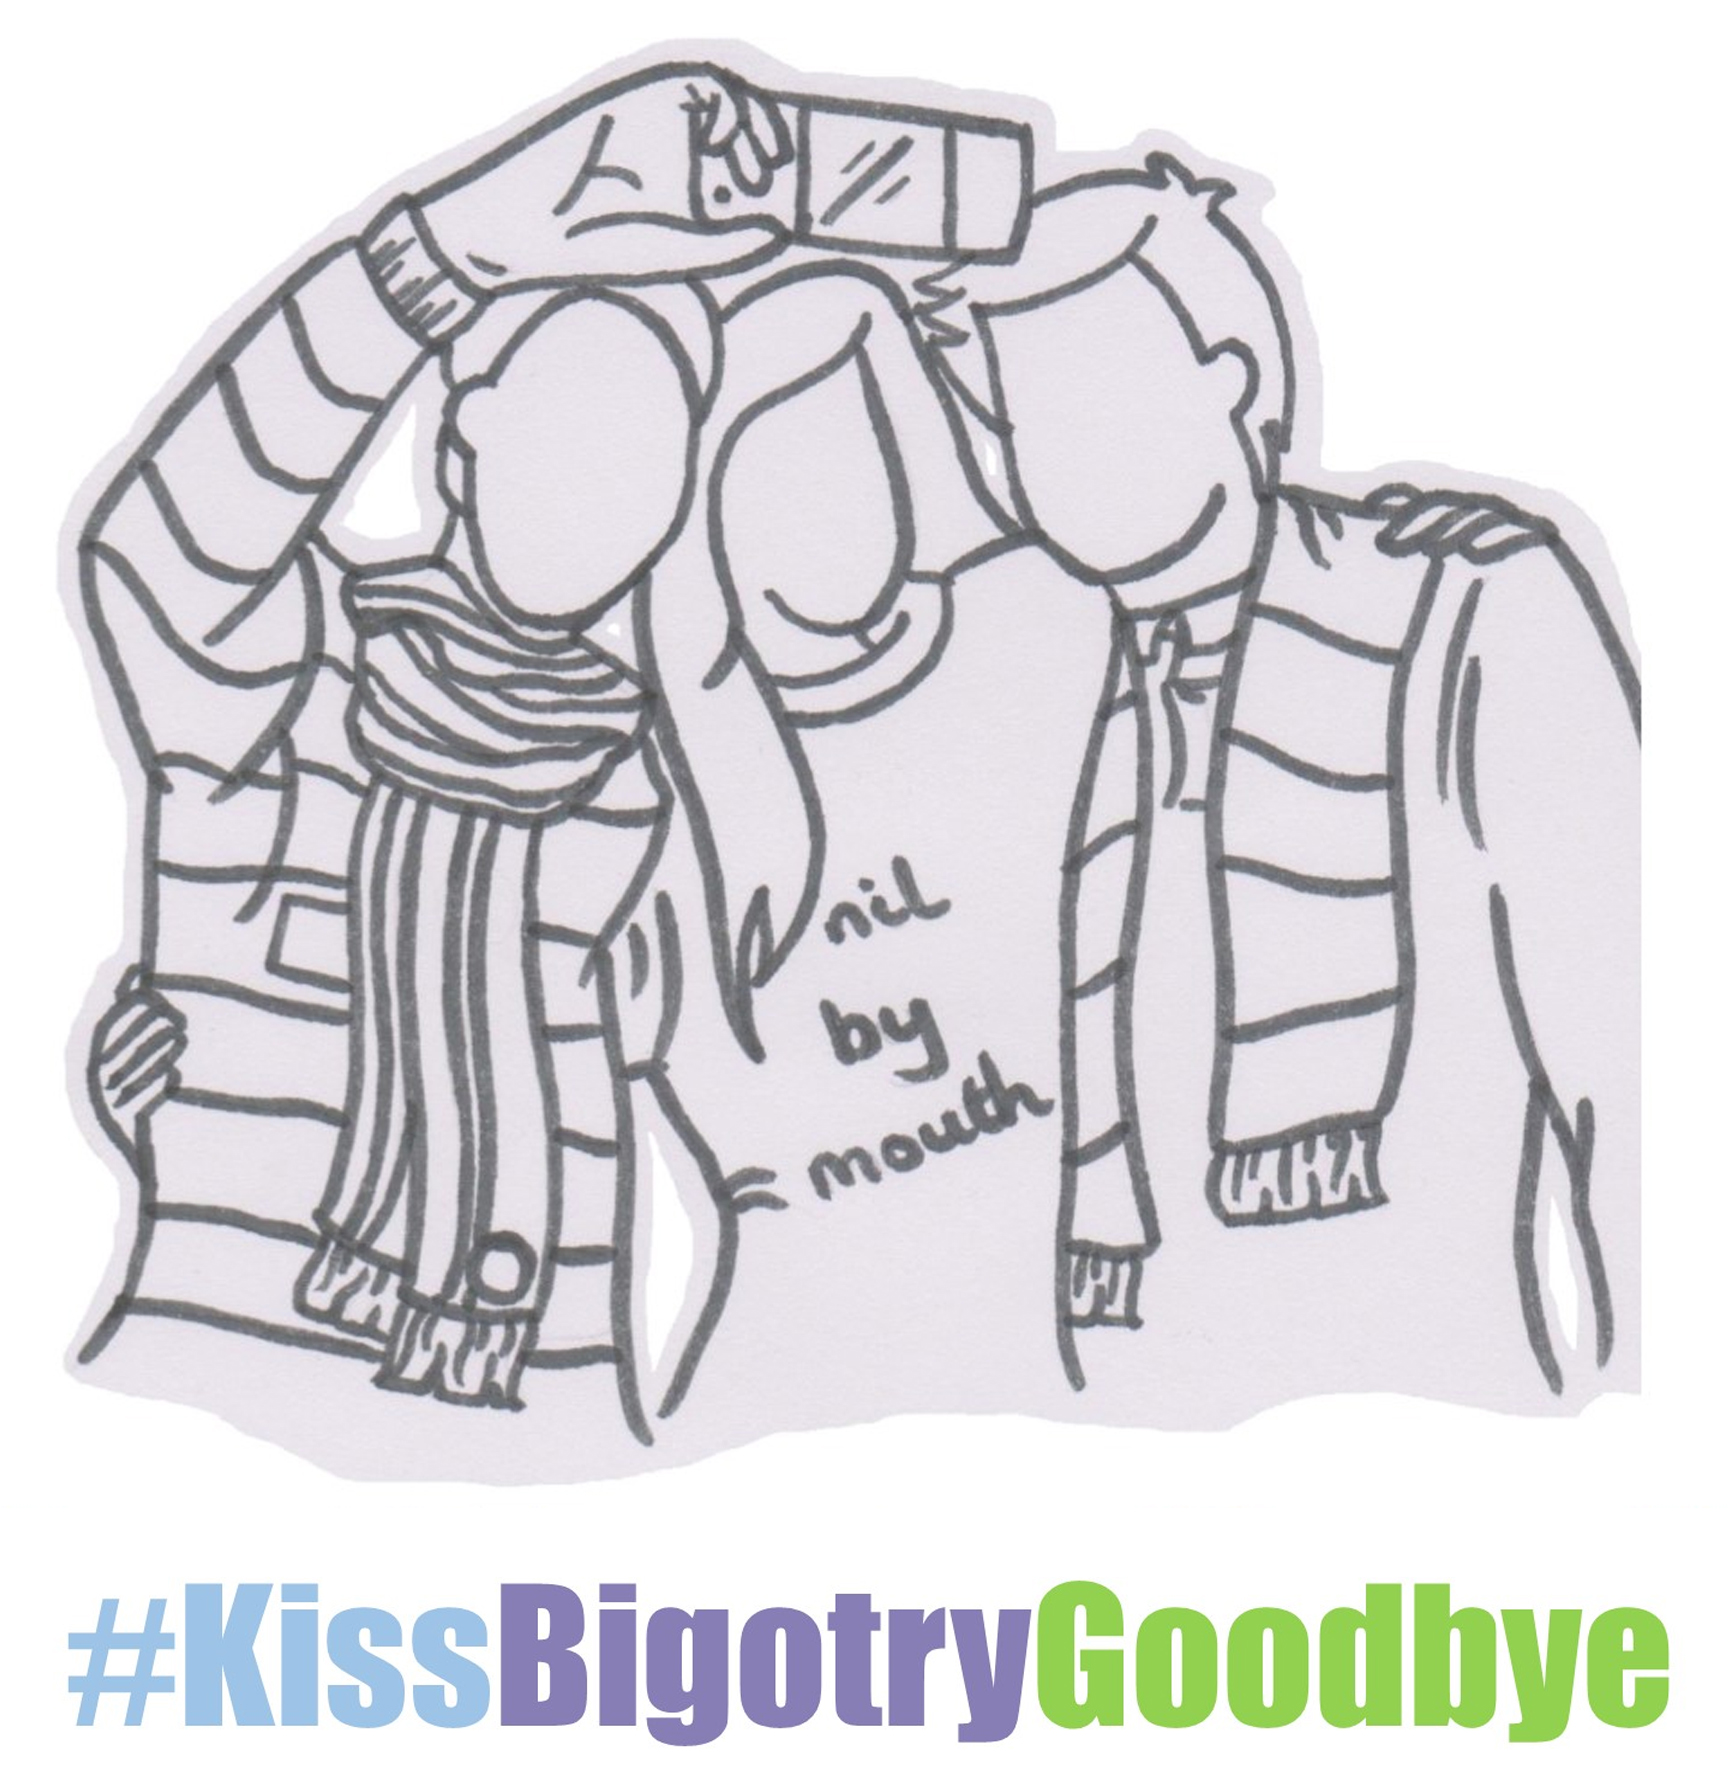 'Kiss Bigotry Goodbye' Tour Launched